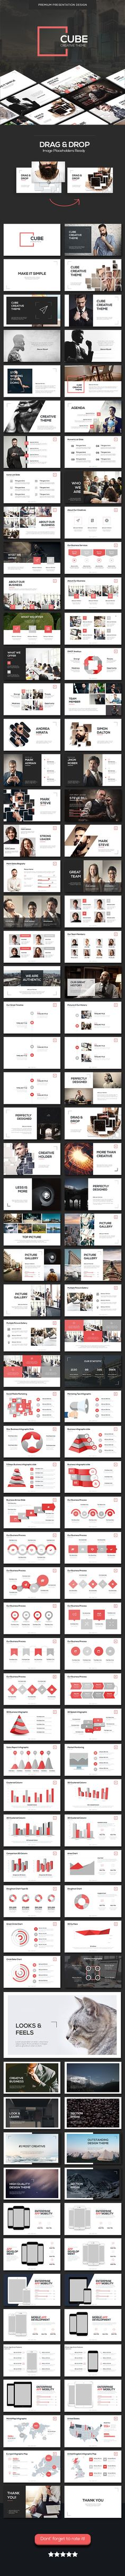 "id=""item-description__cube-creative-theme"">CUBE & Creative Theme&lt. Corporate Presentation, Presentation Layout, Presentation Templates, Keynote Design, Brochure Design, Power Points, Interface Web, Magazin Design, Slide Design"